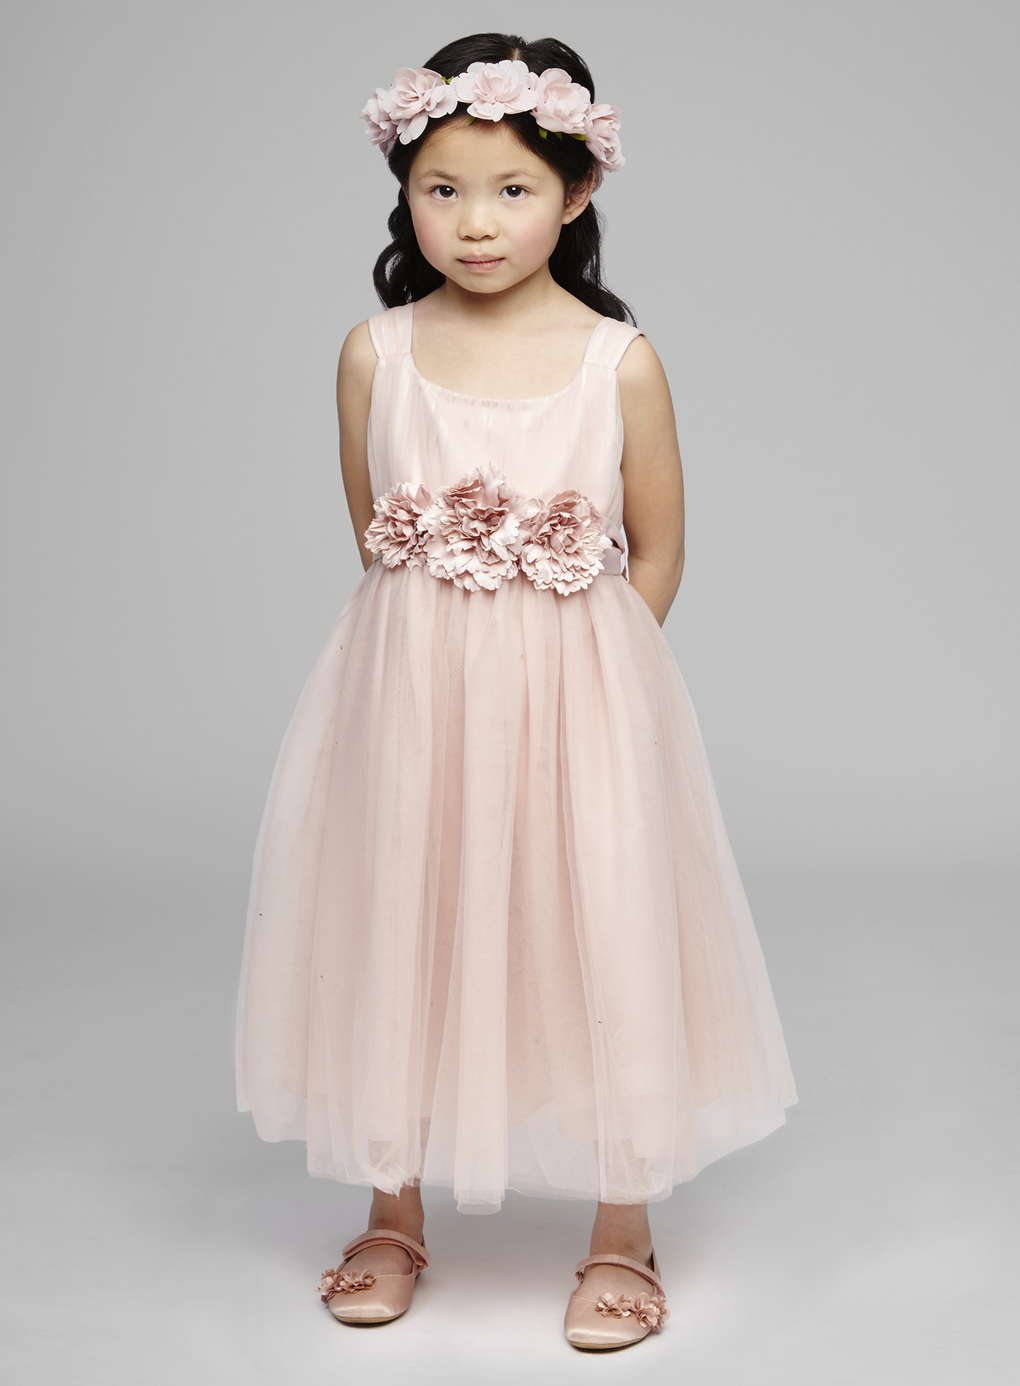 Discount flower girl dresses and accessories flower girl dresses discount flower girl dresses and accessories 70 izmirmasajfo Images